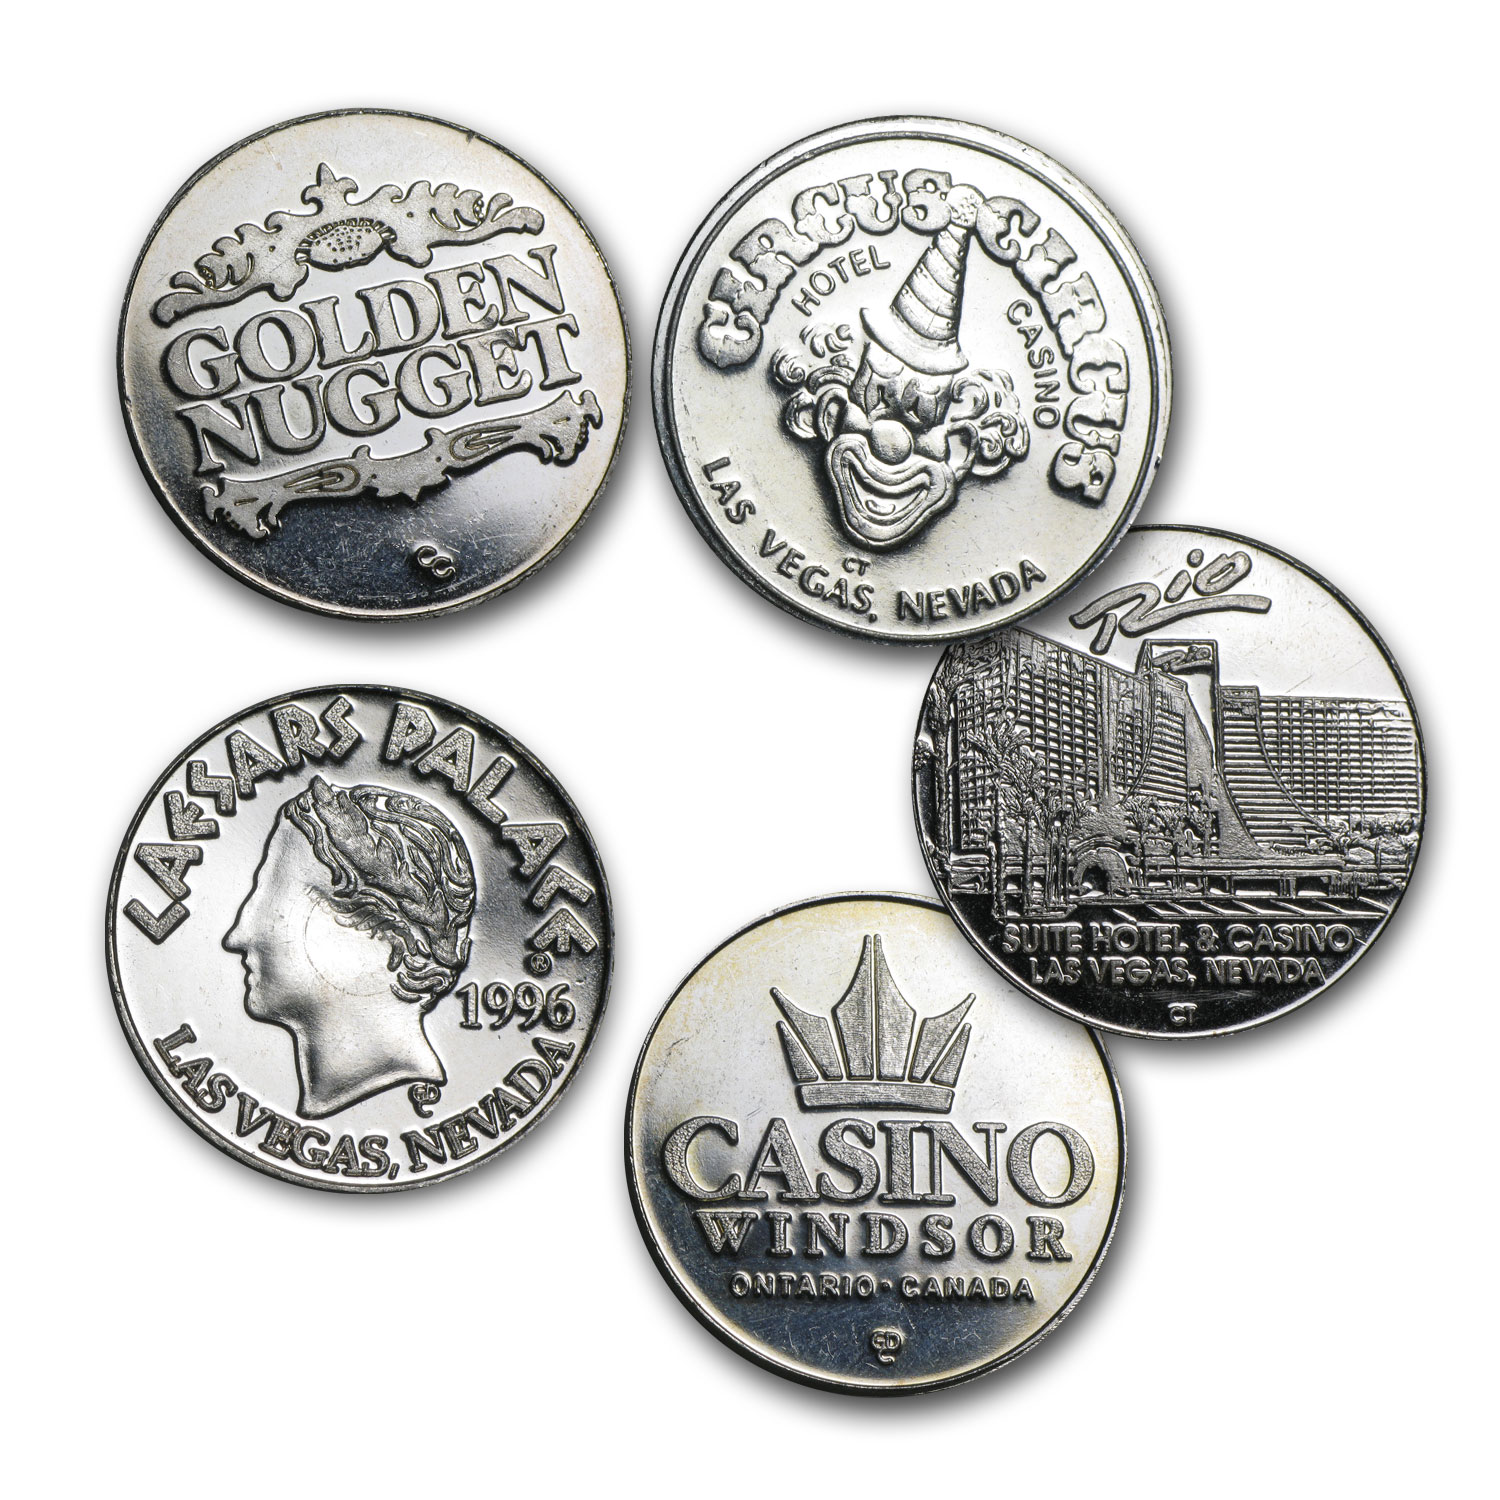 0.60 oz Silver Rounds - Gaming/Casino Token (Knockouts)